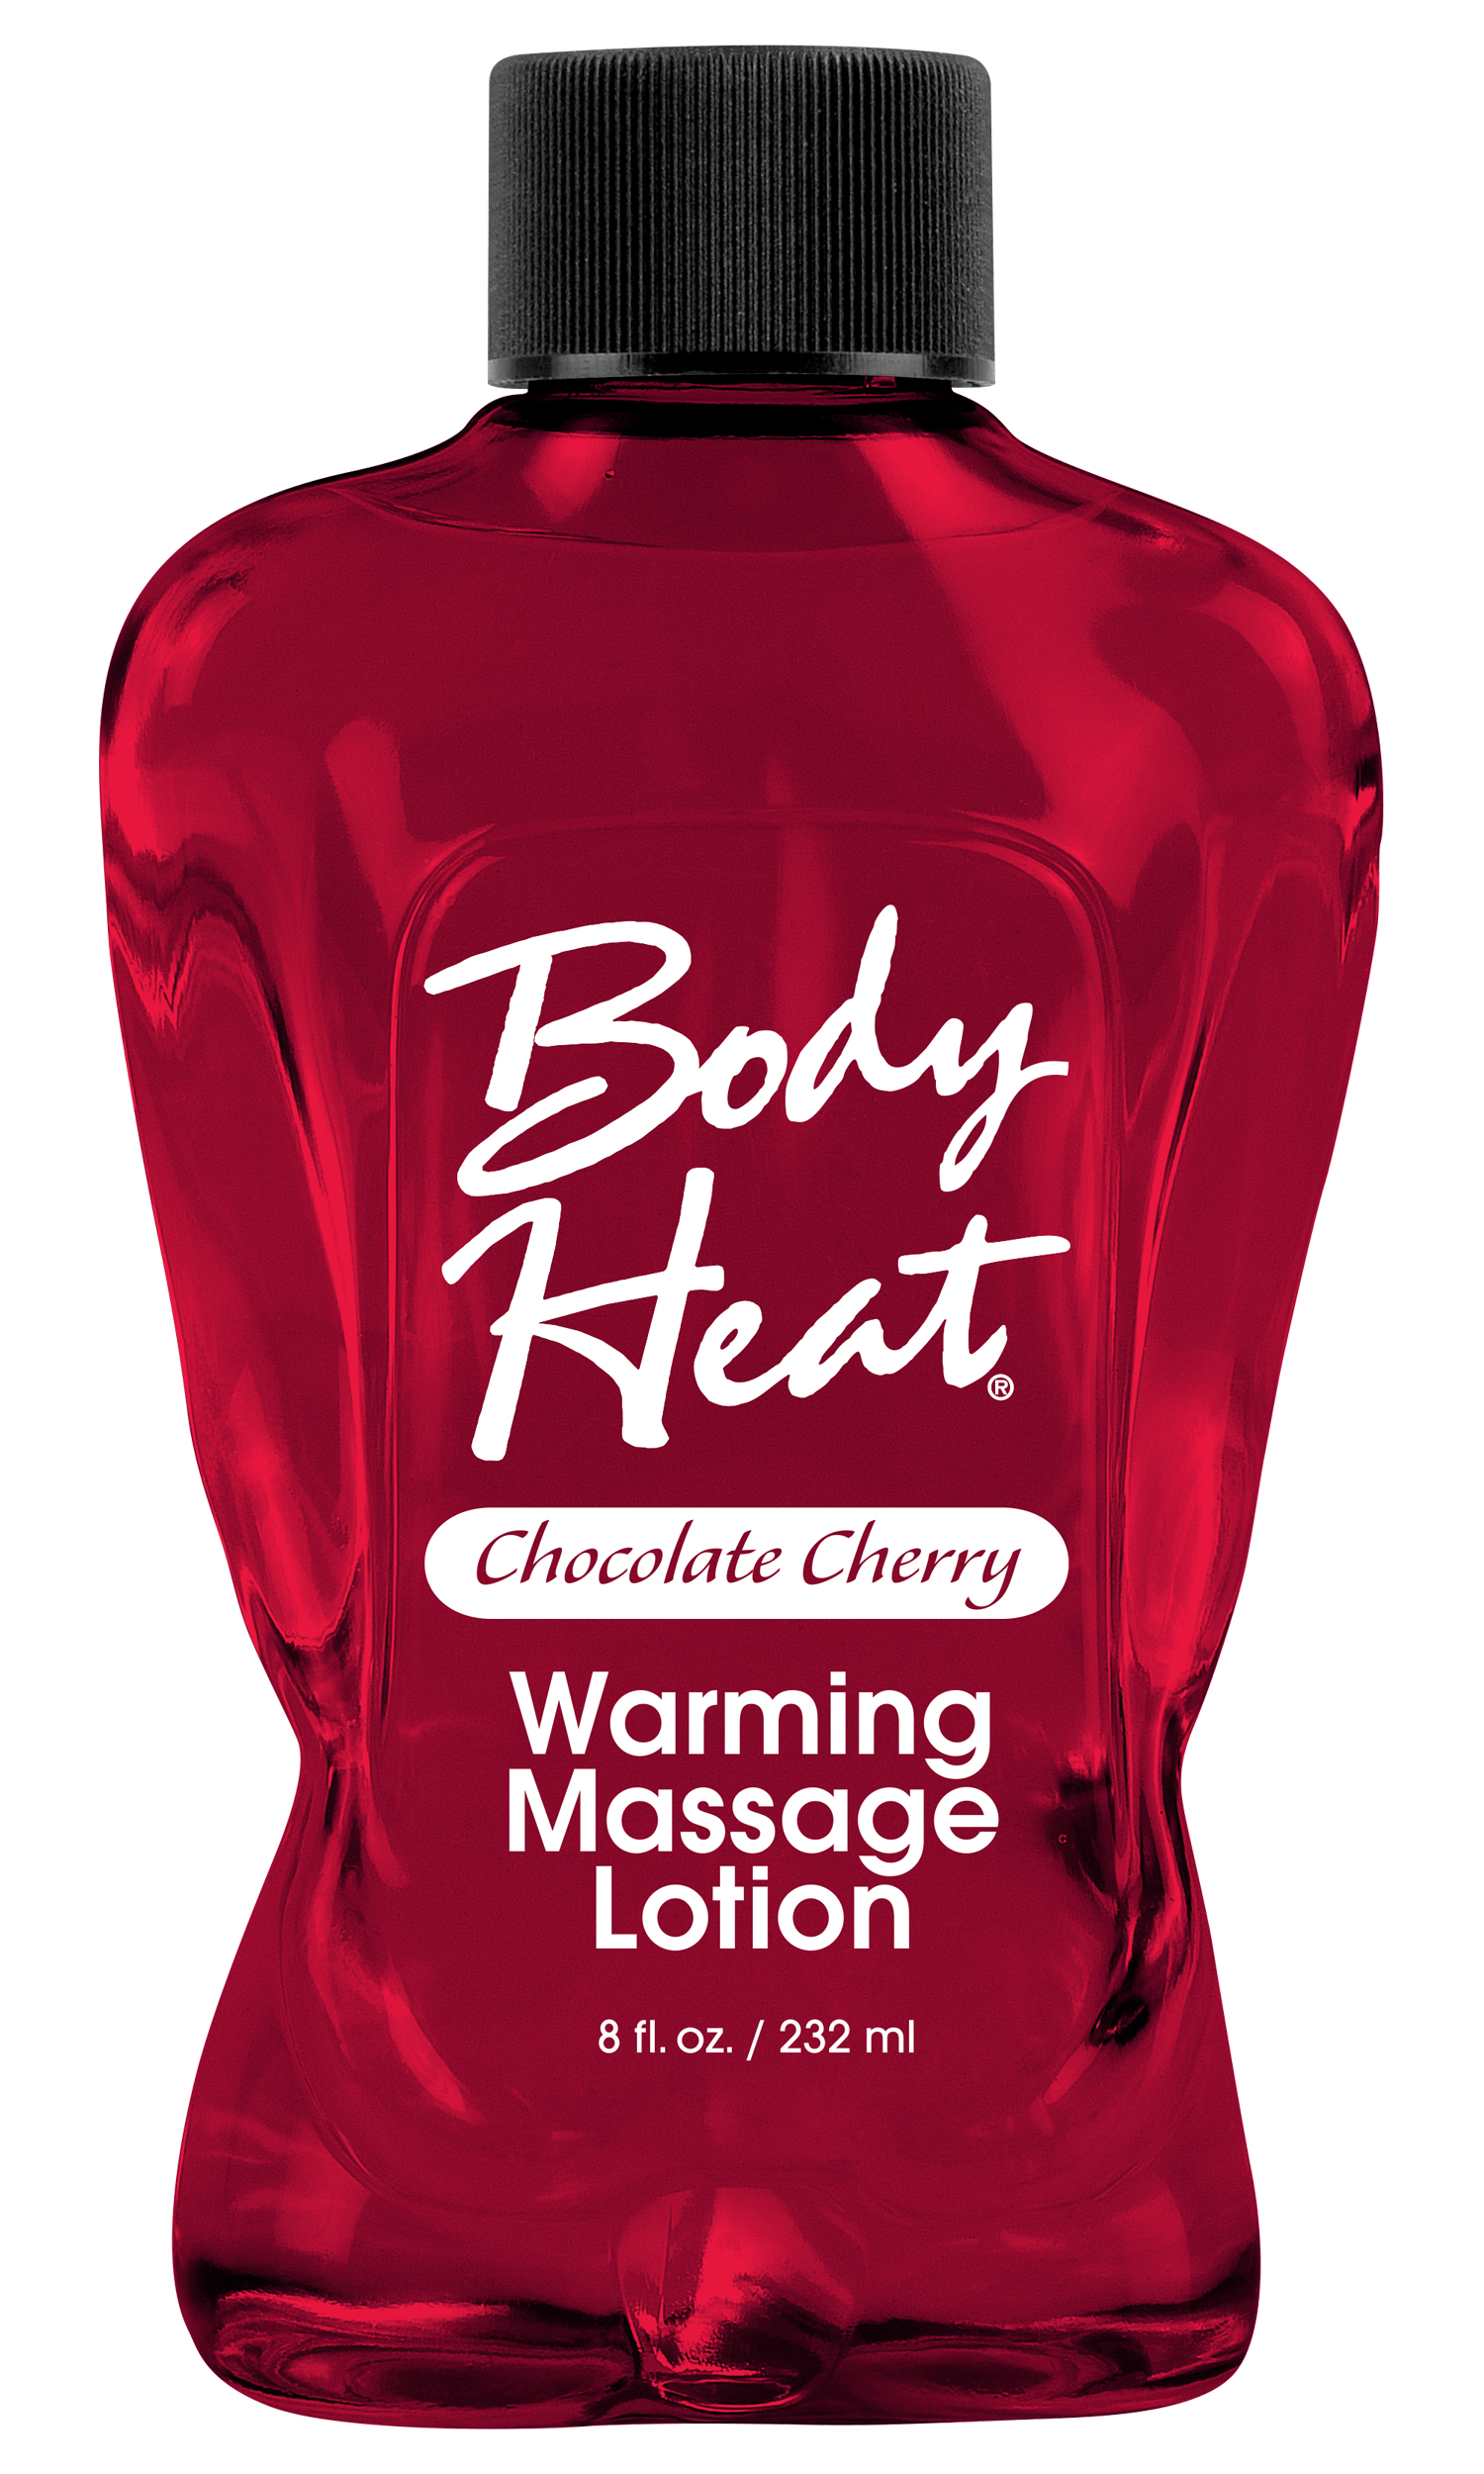 BODY HEAT WARMING MASSAGE LOTION CHOC/CHERRY